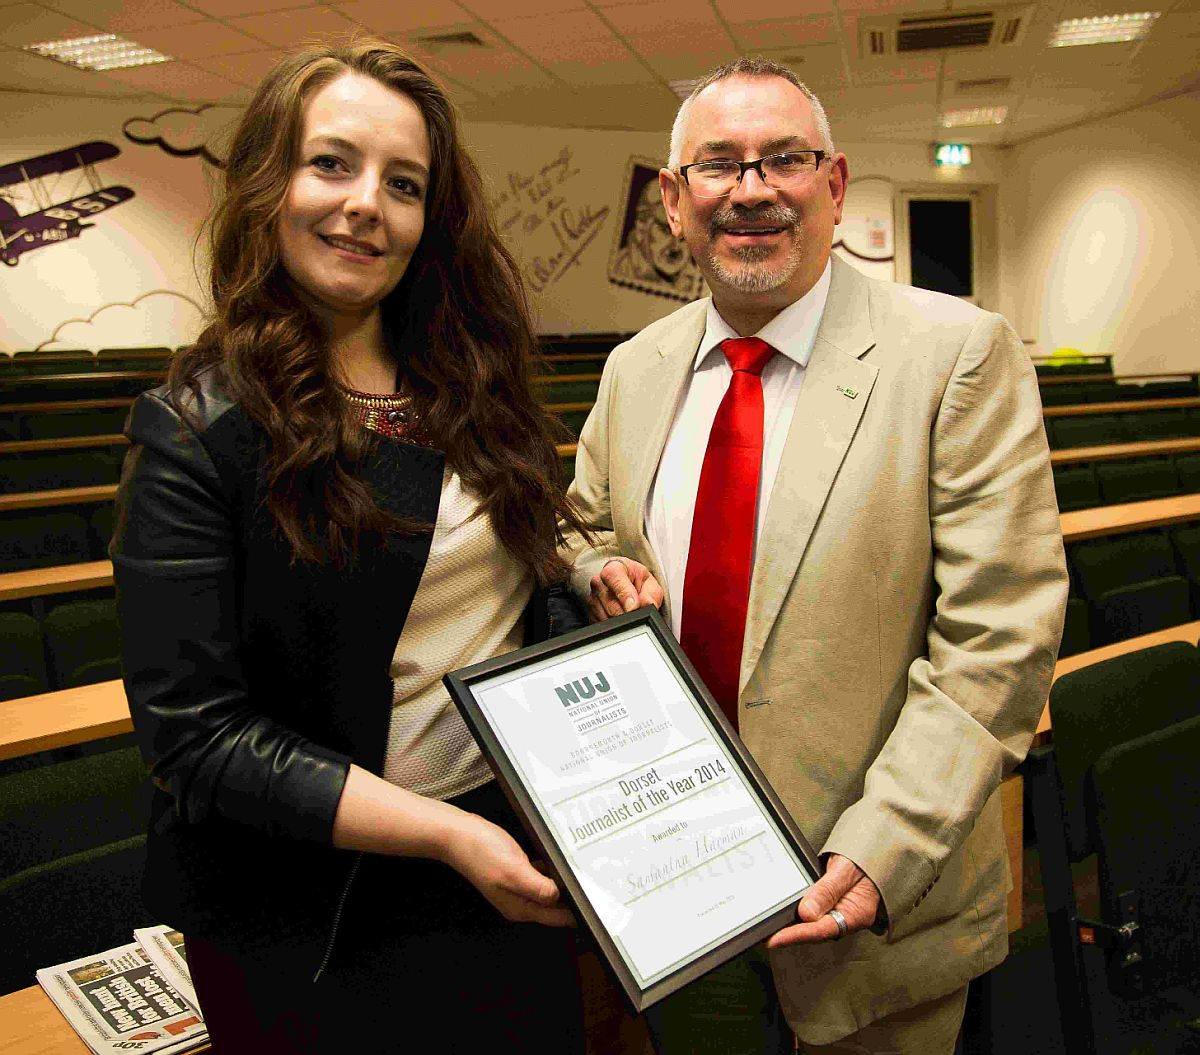 ACCOLADE: Samantha  receives her award from Adam Christie, NUJ president